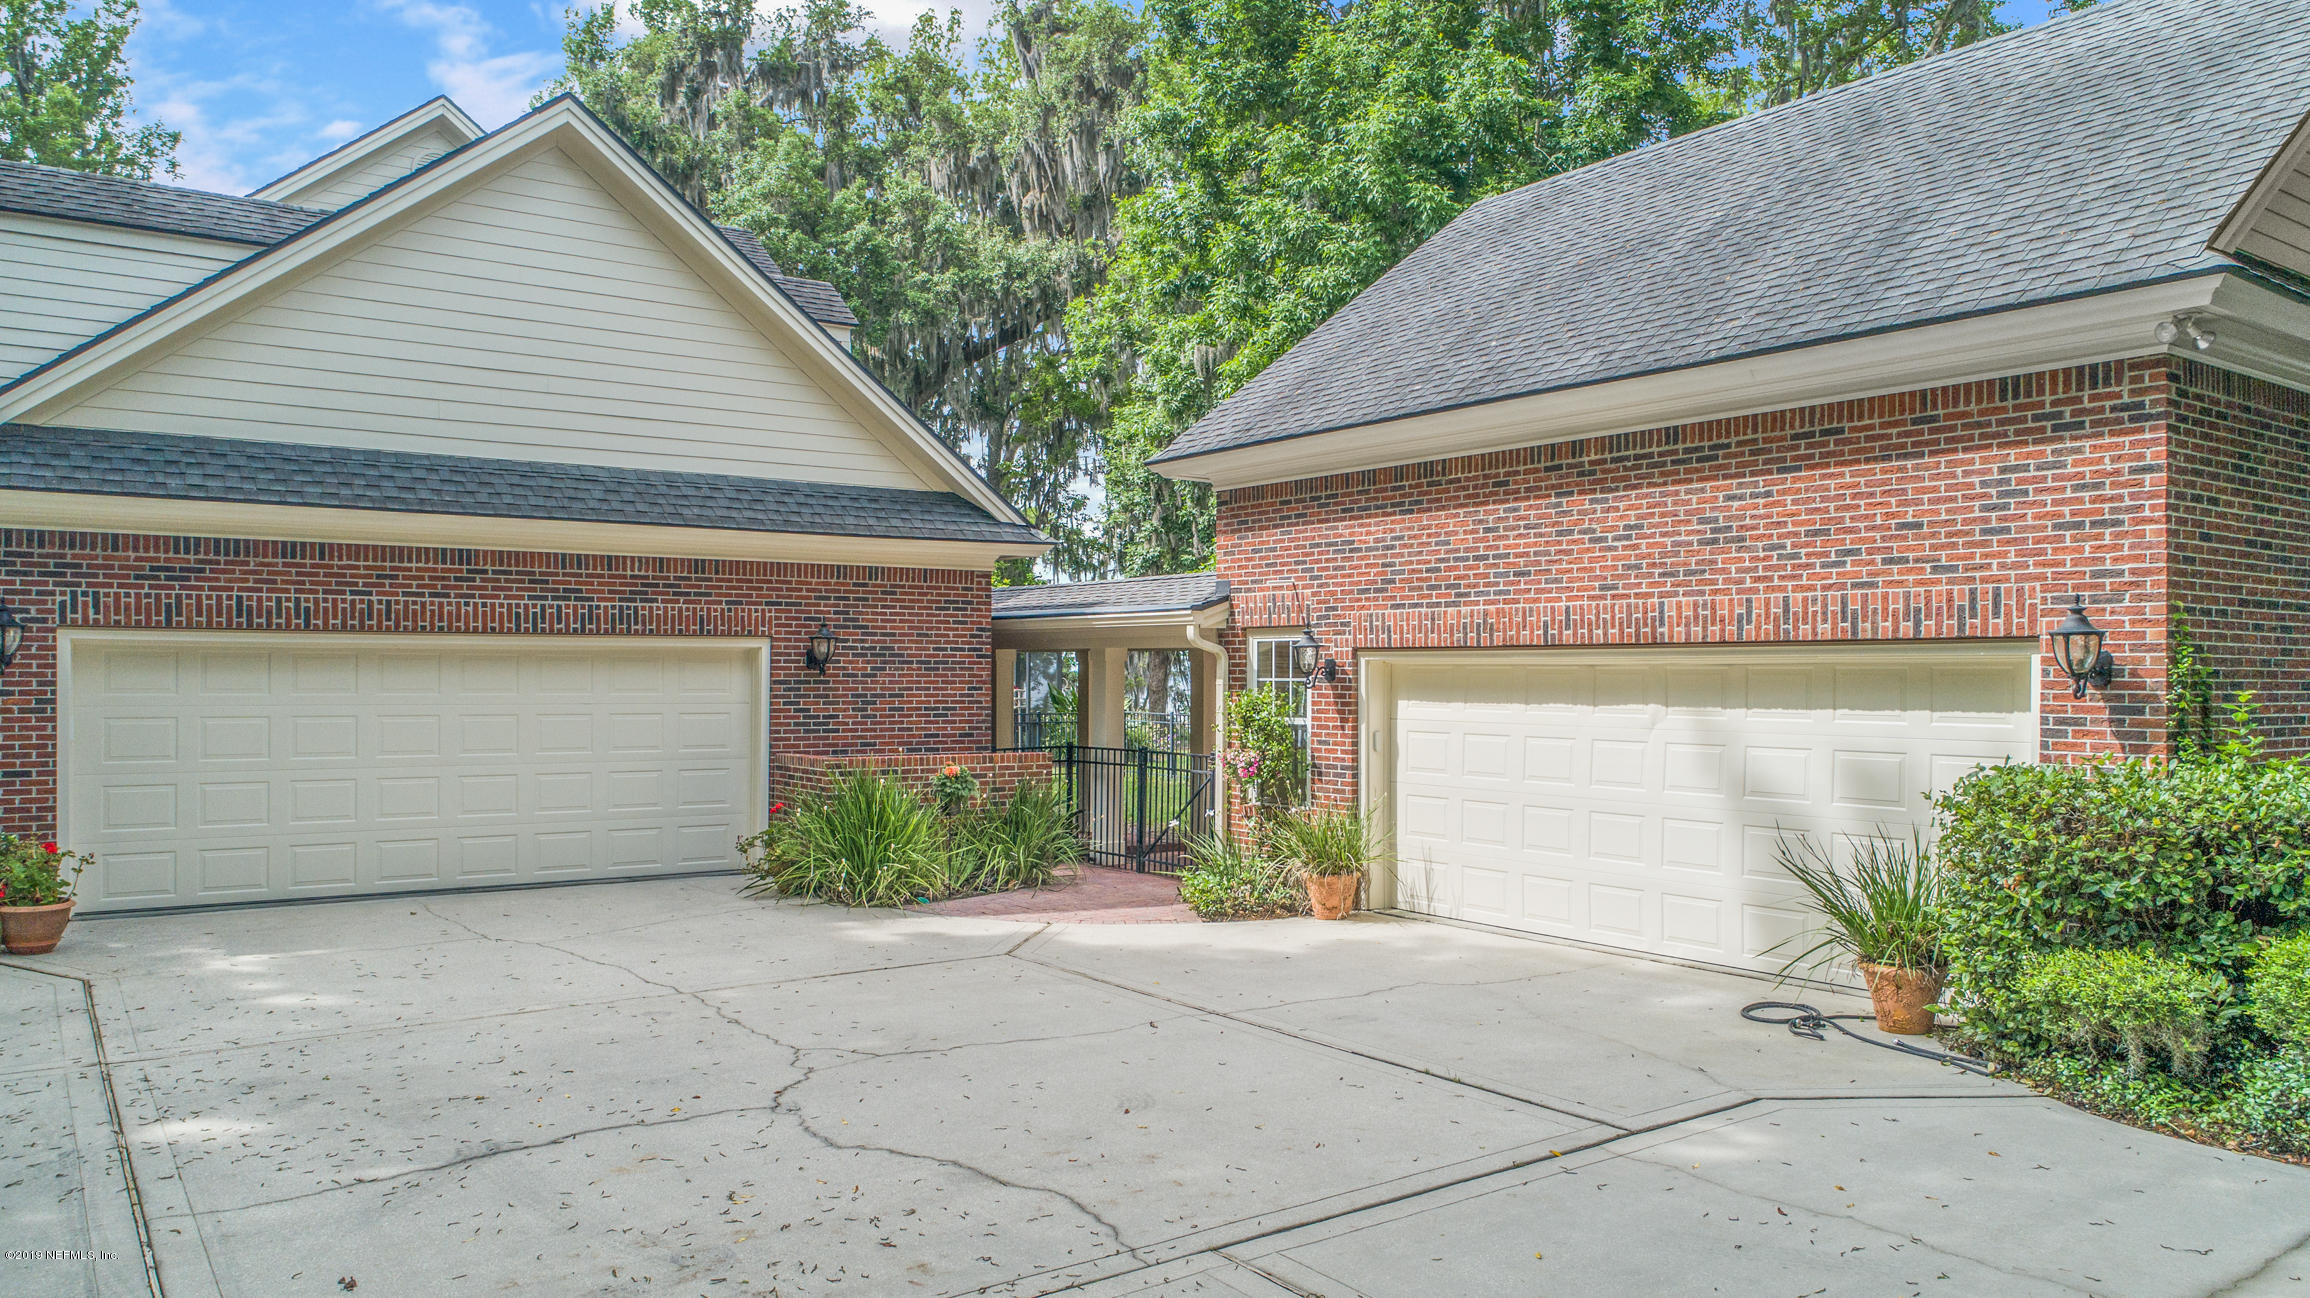 3030 STATE ROAD 13 ST JOHNS - 79